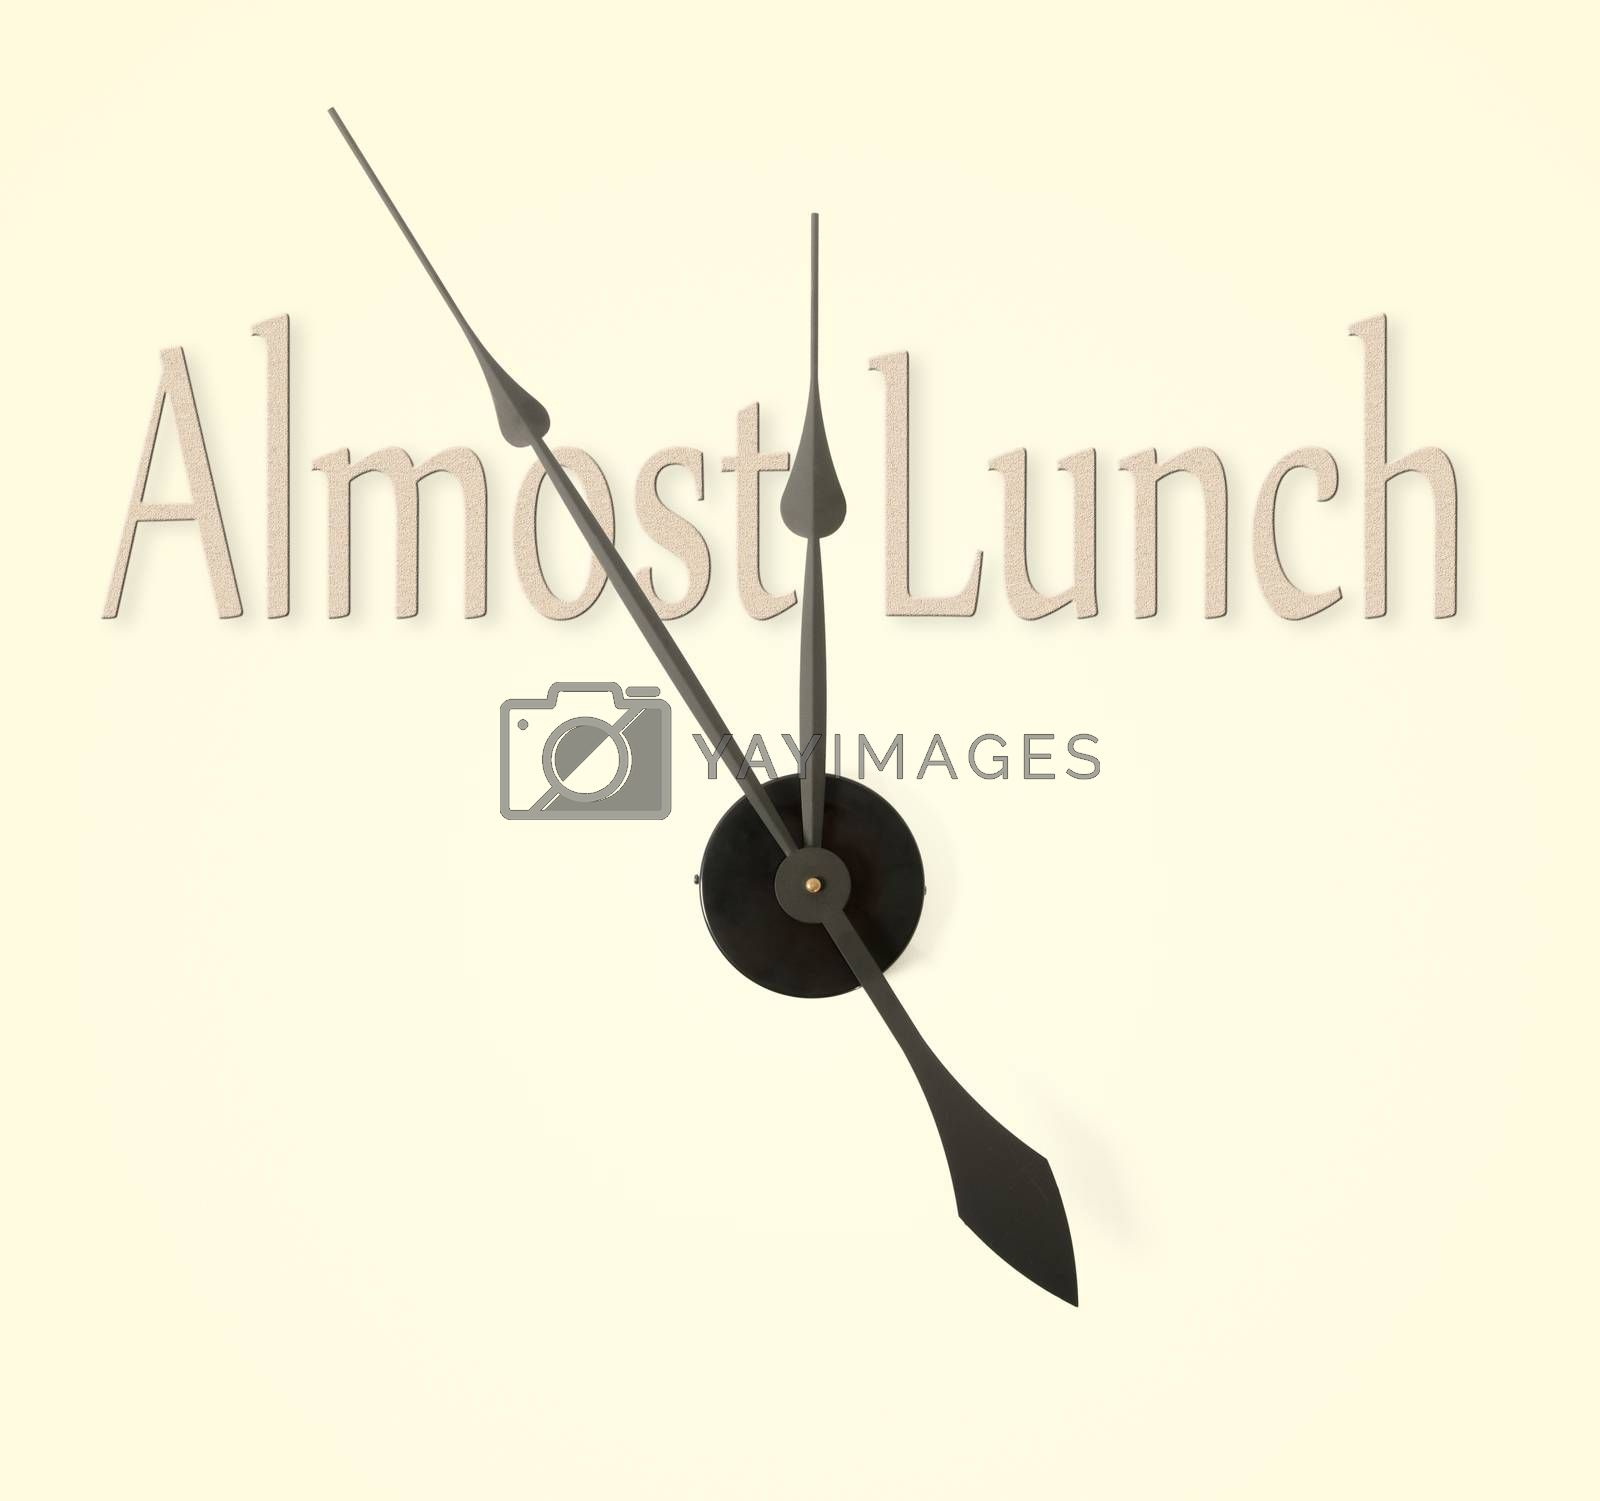 Clock hands pointing to almost lunch